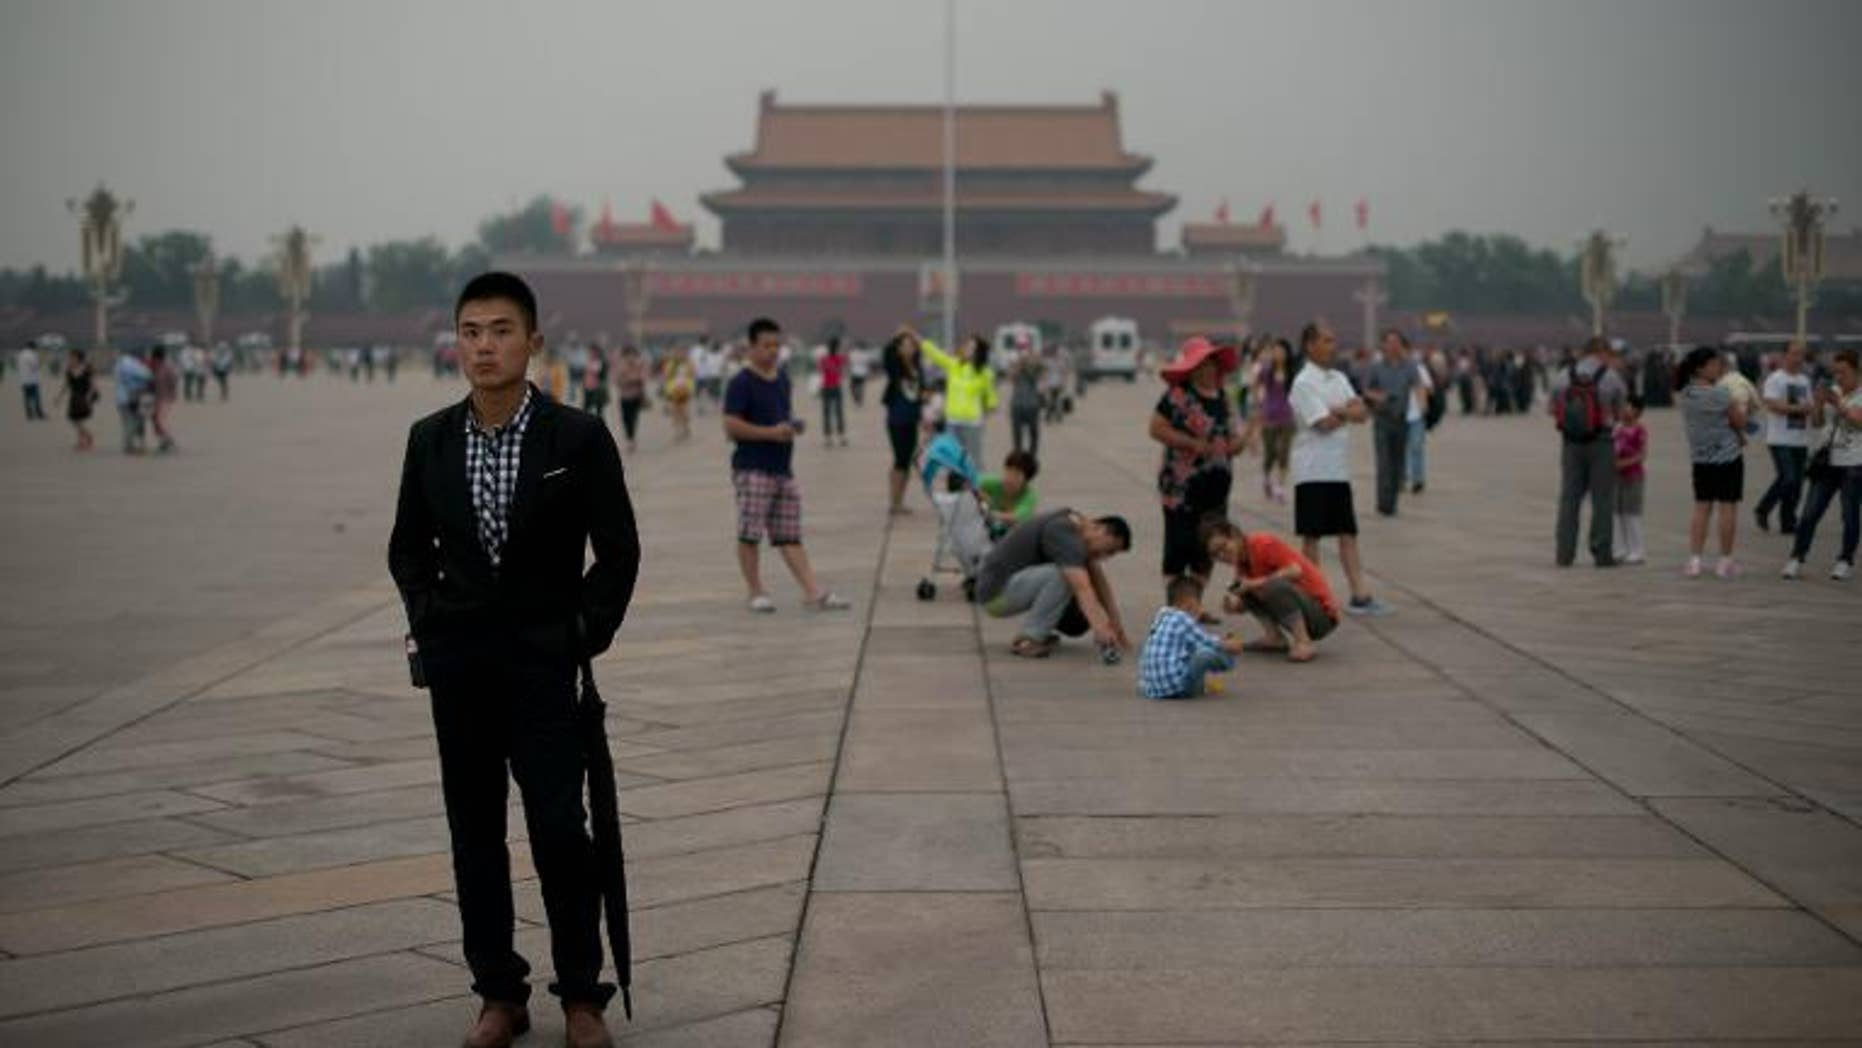 A plain-clothes policeman (L) at Tiananmen square in Beijing on June 4, 2013.